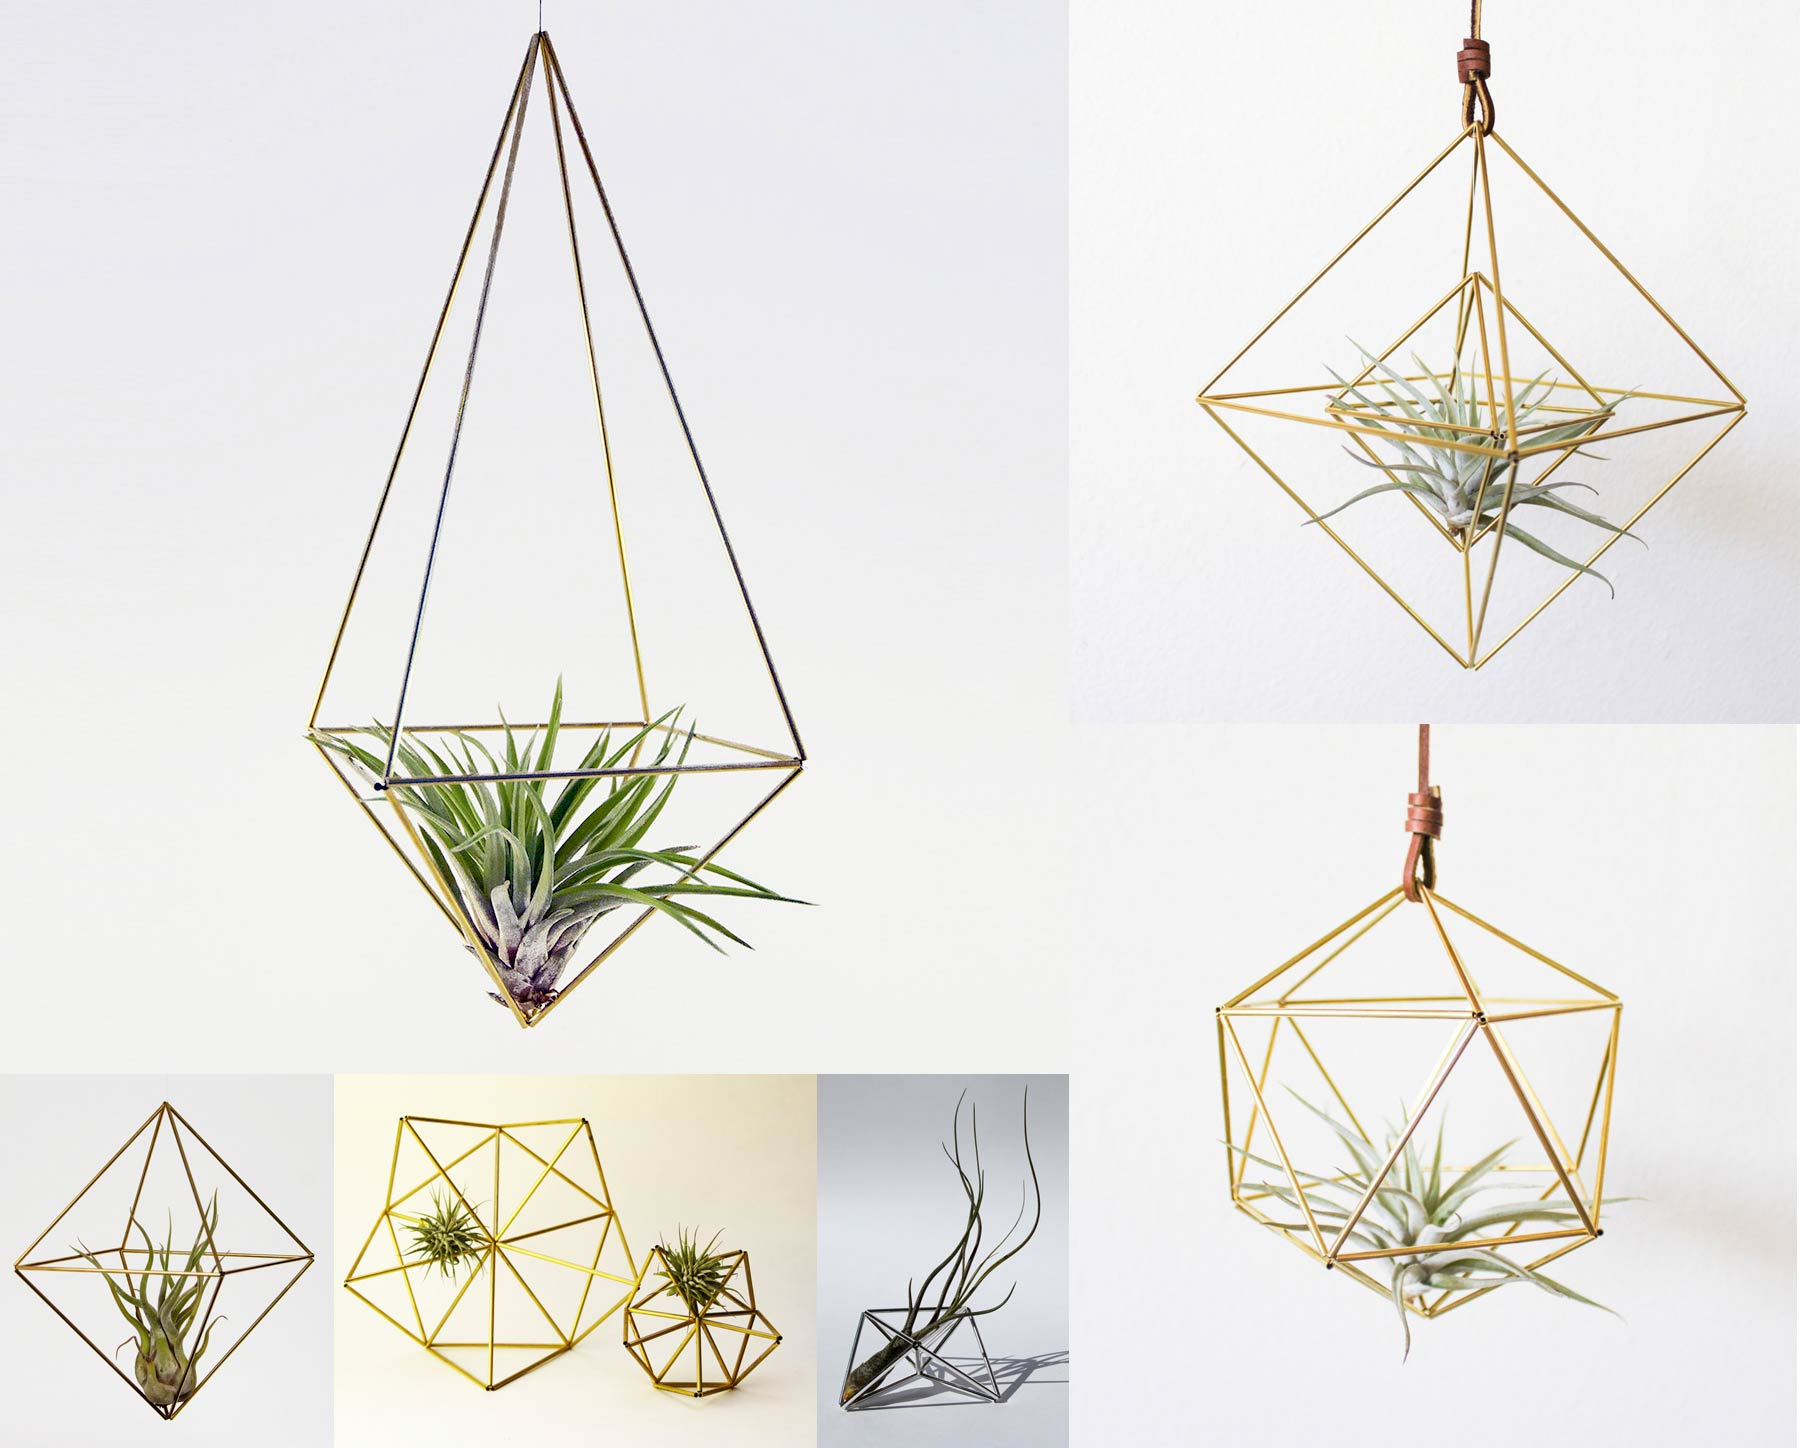 3D geometry made out of metallic bands and a tillandsia plant inside.